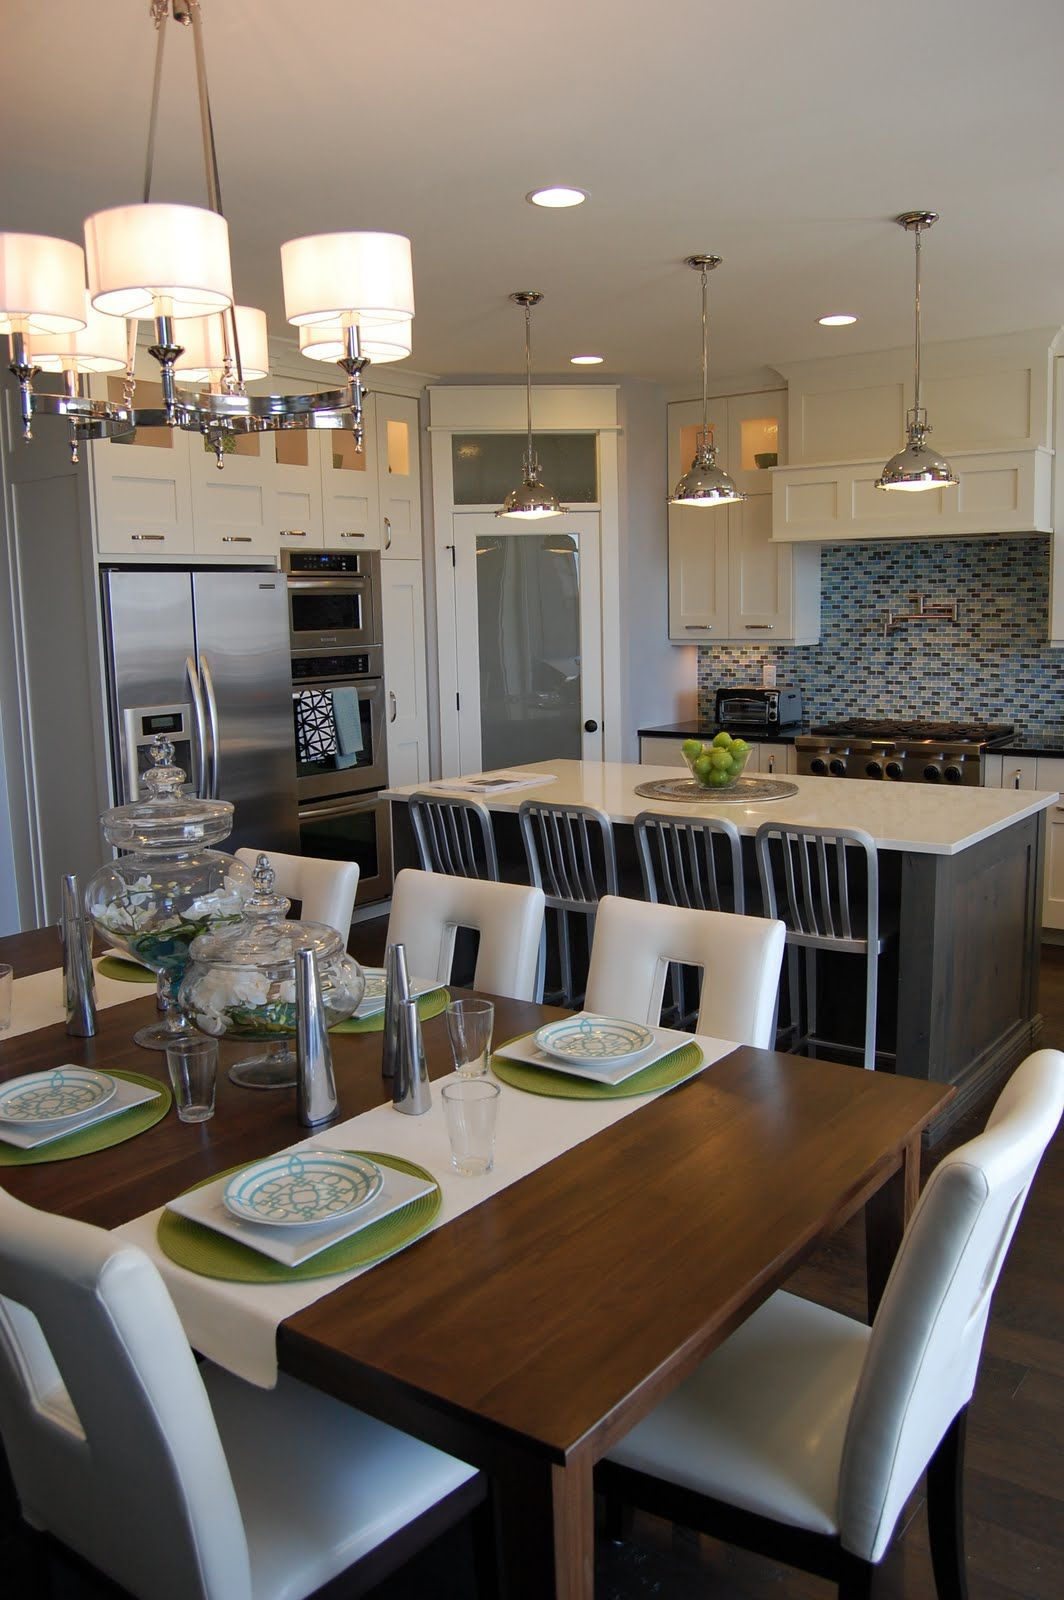 Gree N White Combination For Kitchen Cabinets Kitchen-lighting, White Cabinets With Dark Grey Island